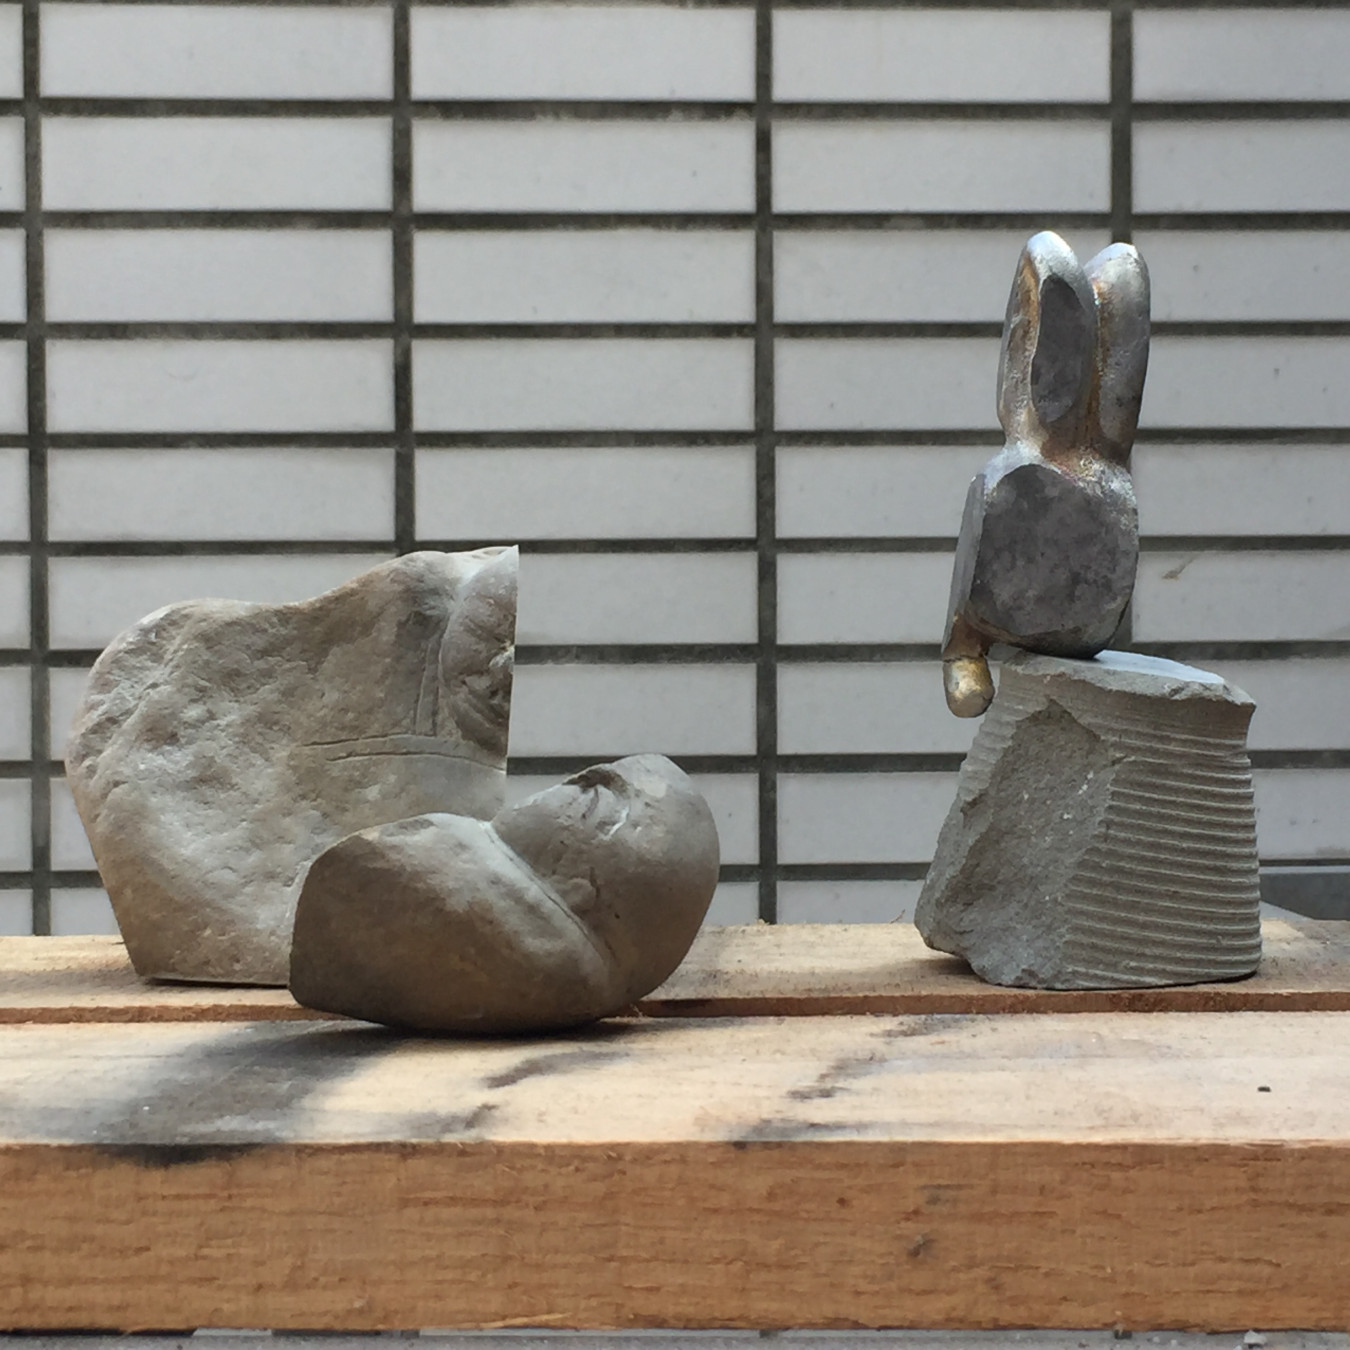 Image of statue and bunny after artists have altered each others work. A-Fu and David Clarke NTCRI Taiwan.